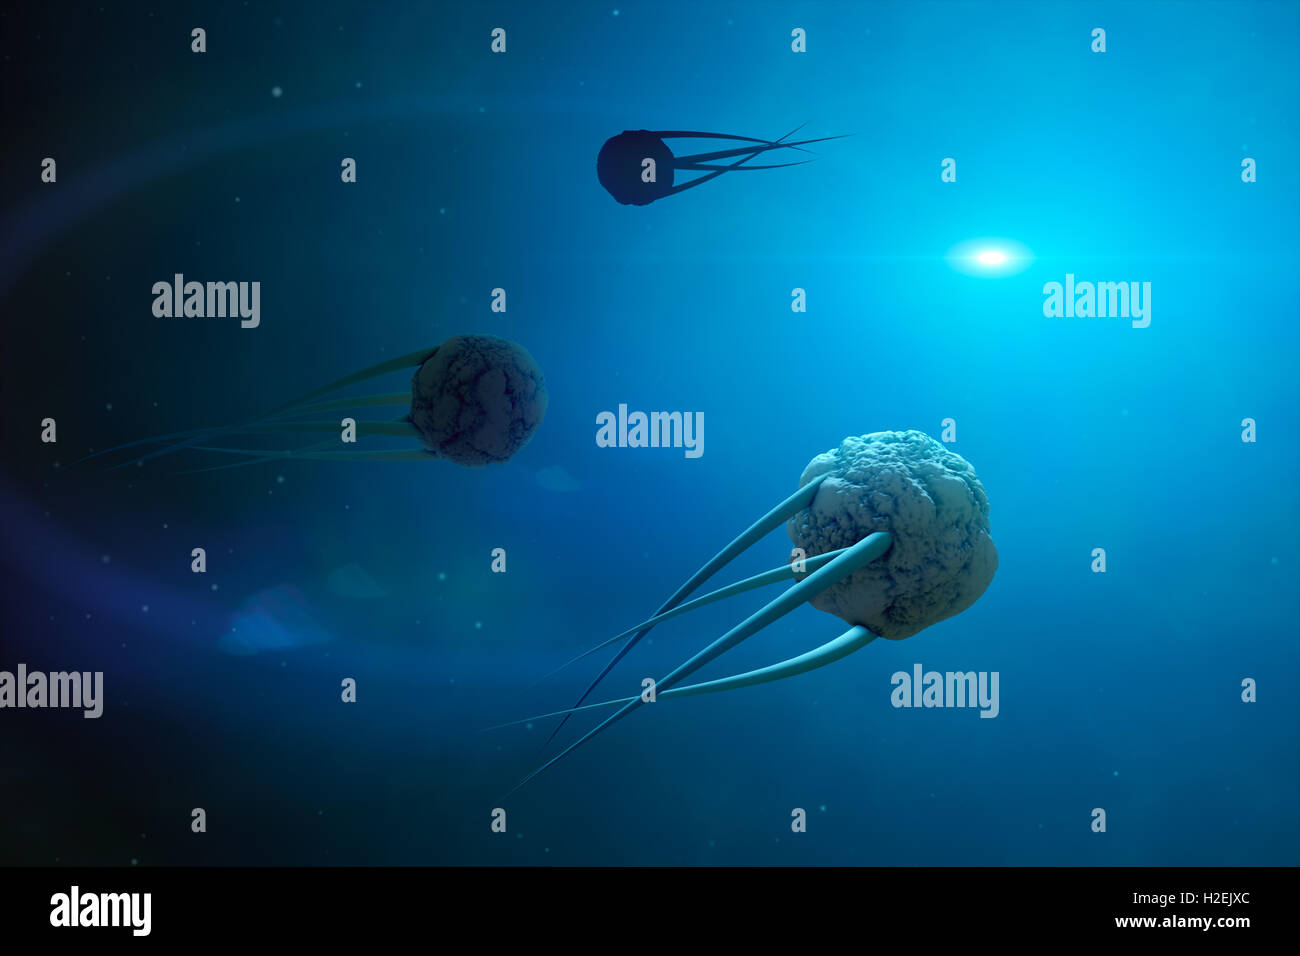 Virus movement in space. This image was created in Photoshop and 3d editor. - Stock Image